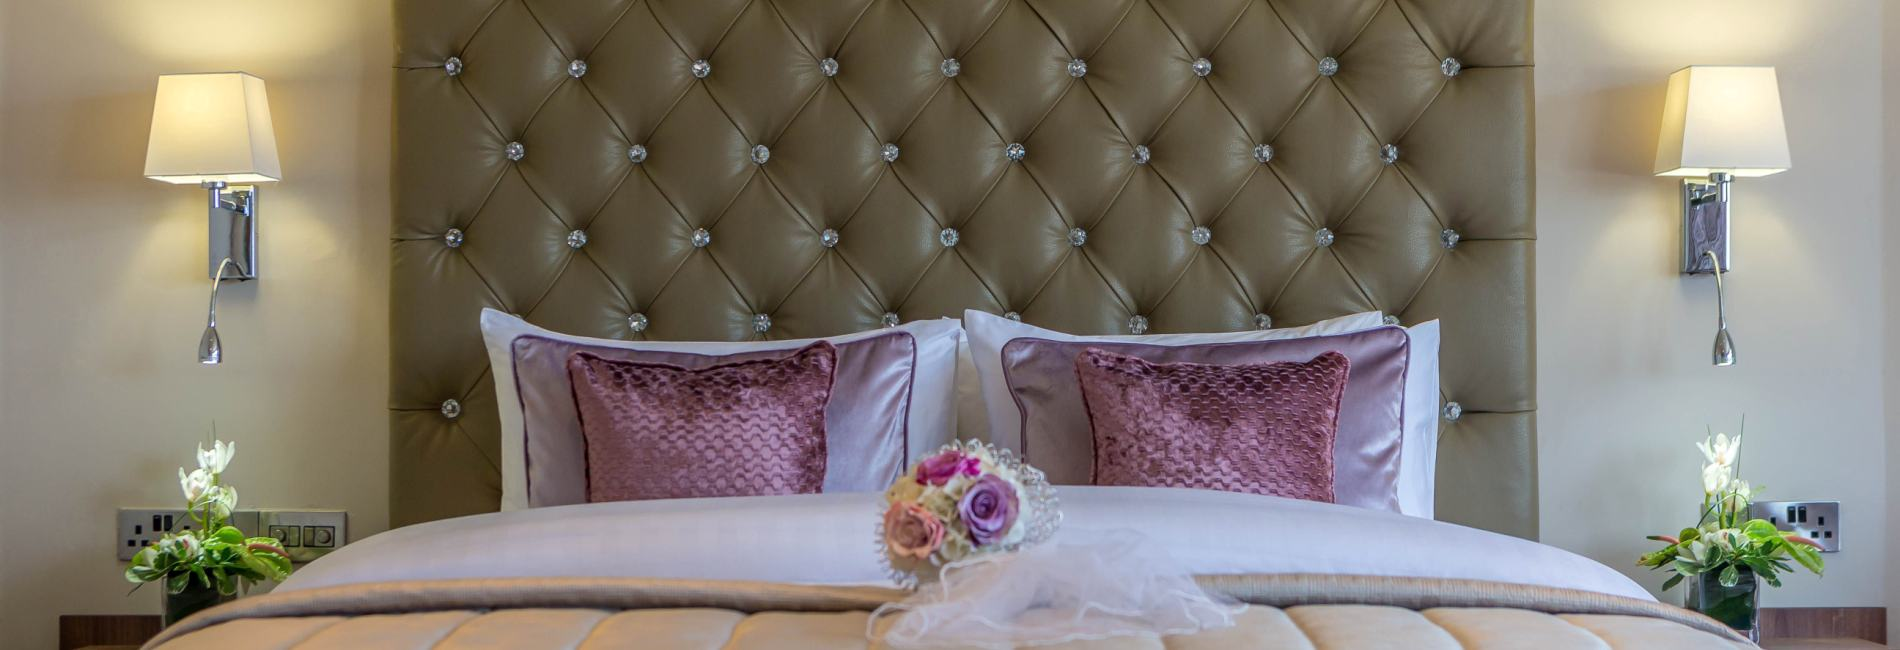 Arklow Bay Hotel Wicklow bridal suite